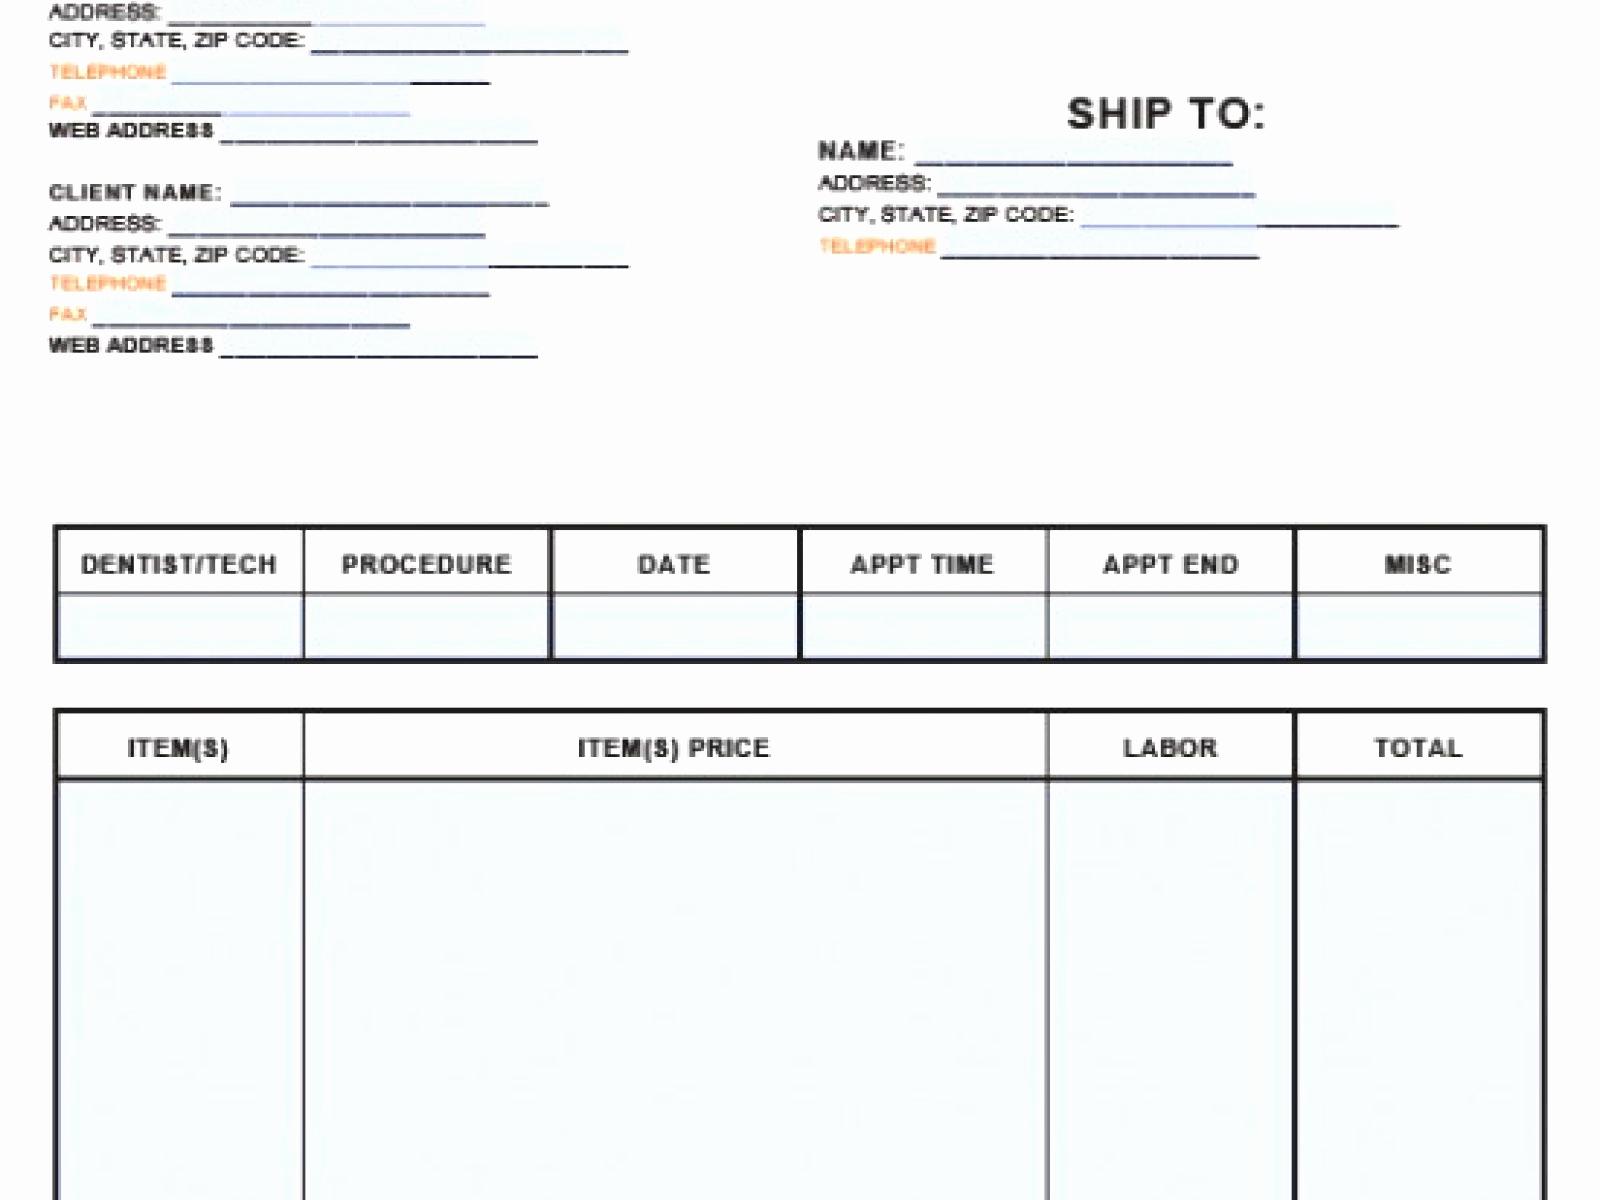 Salvation Army Donation Value Guide 2017 Spreadsheet For Salvation Army Donation Spreadsheet Beautiful Donation Value Guide